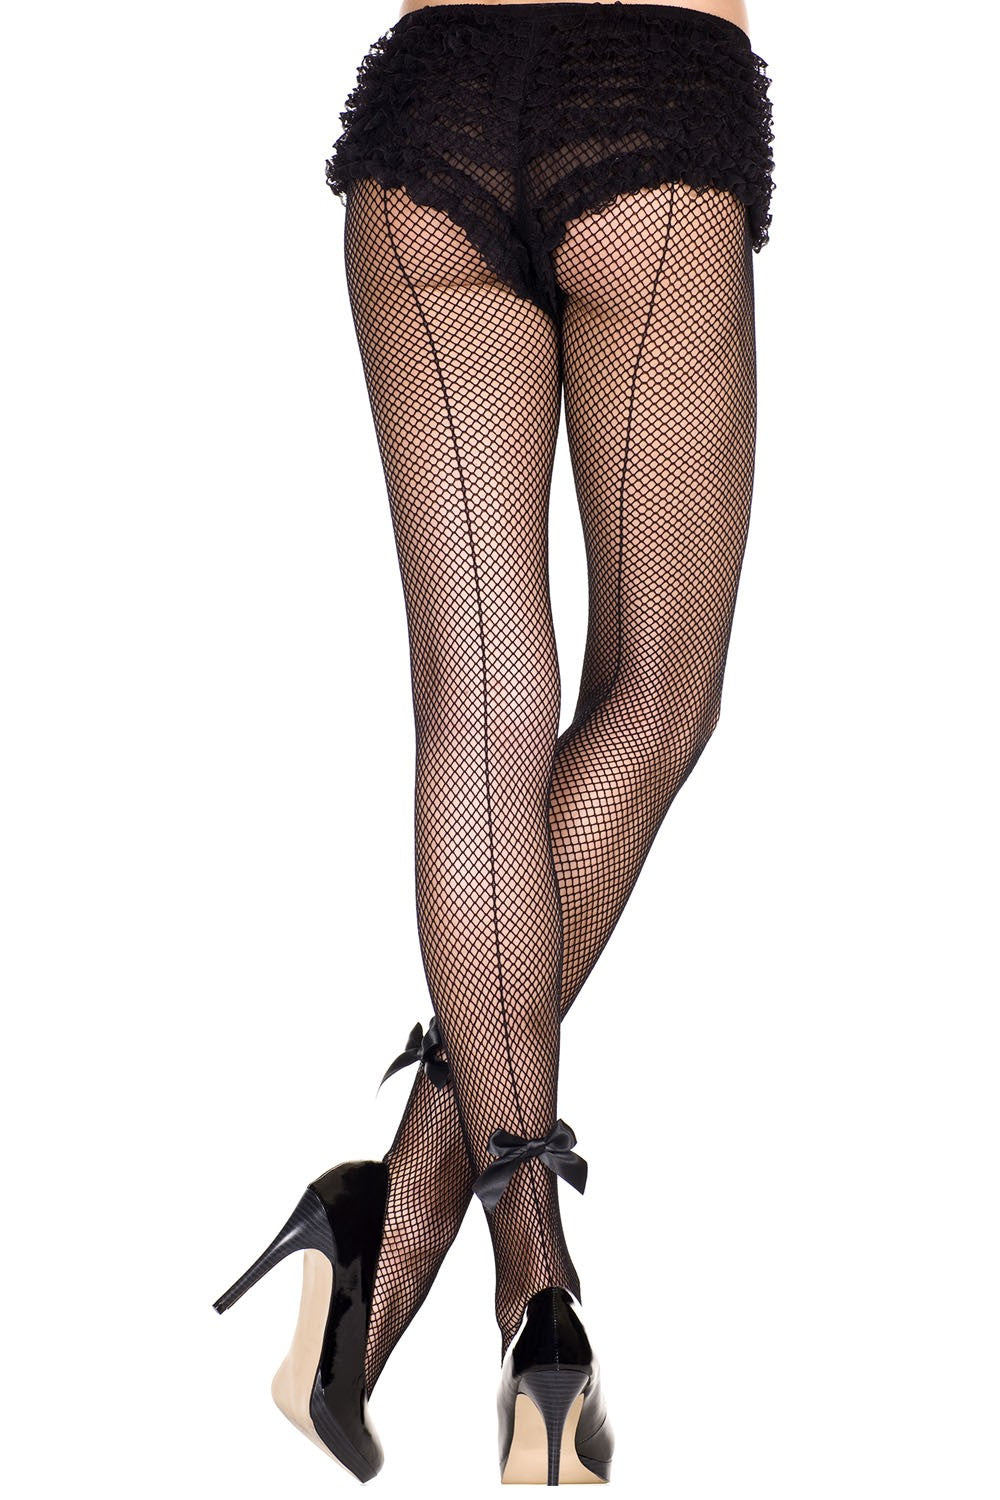 008c077873e37a Music Legs 925 Fishnet Back Seam Pantyhose with Satin Bow – Beverly ...